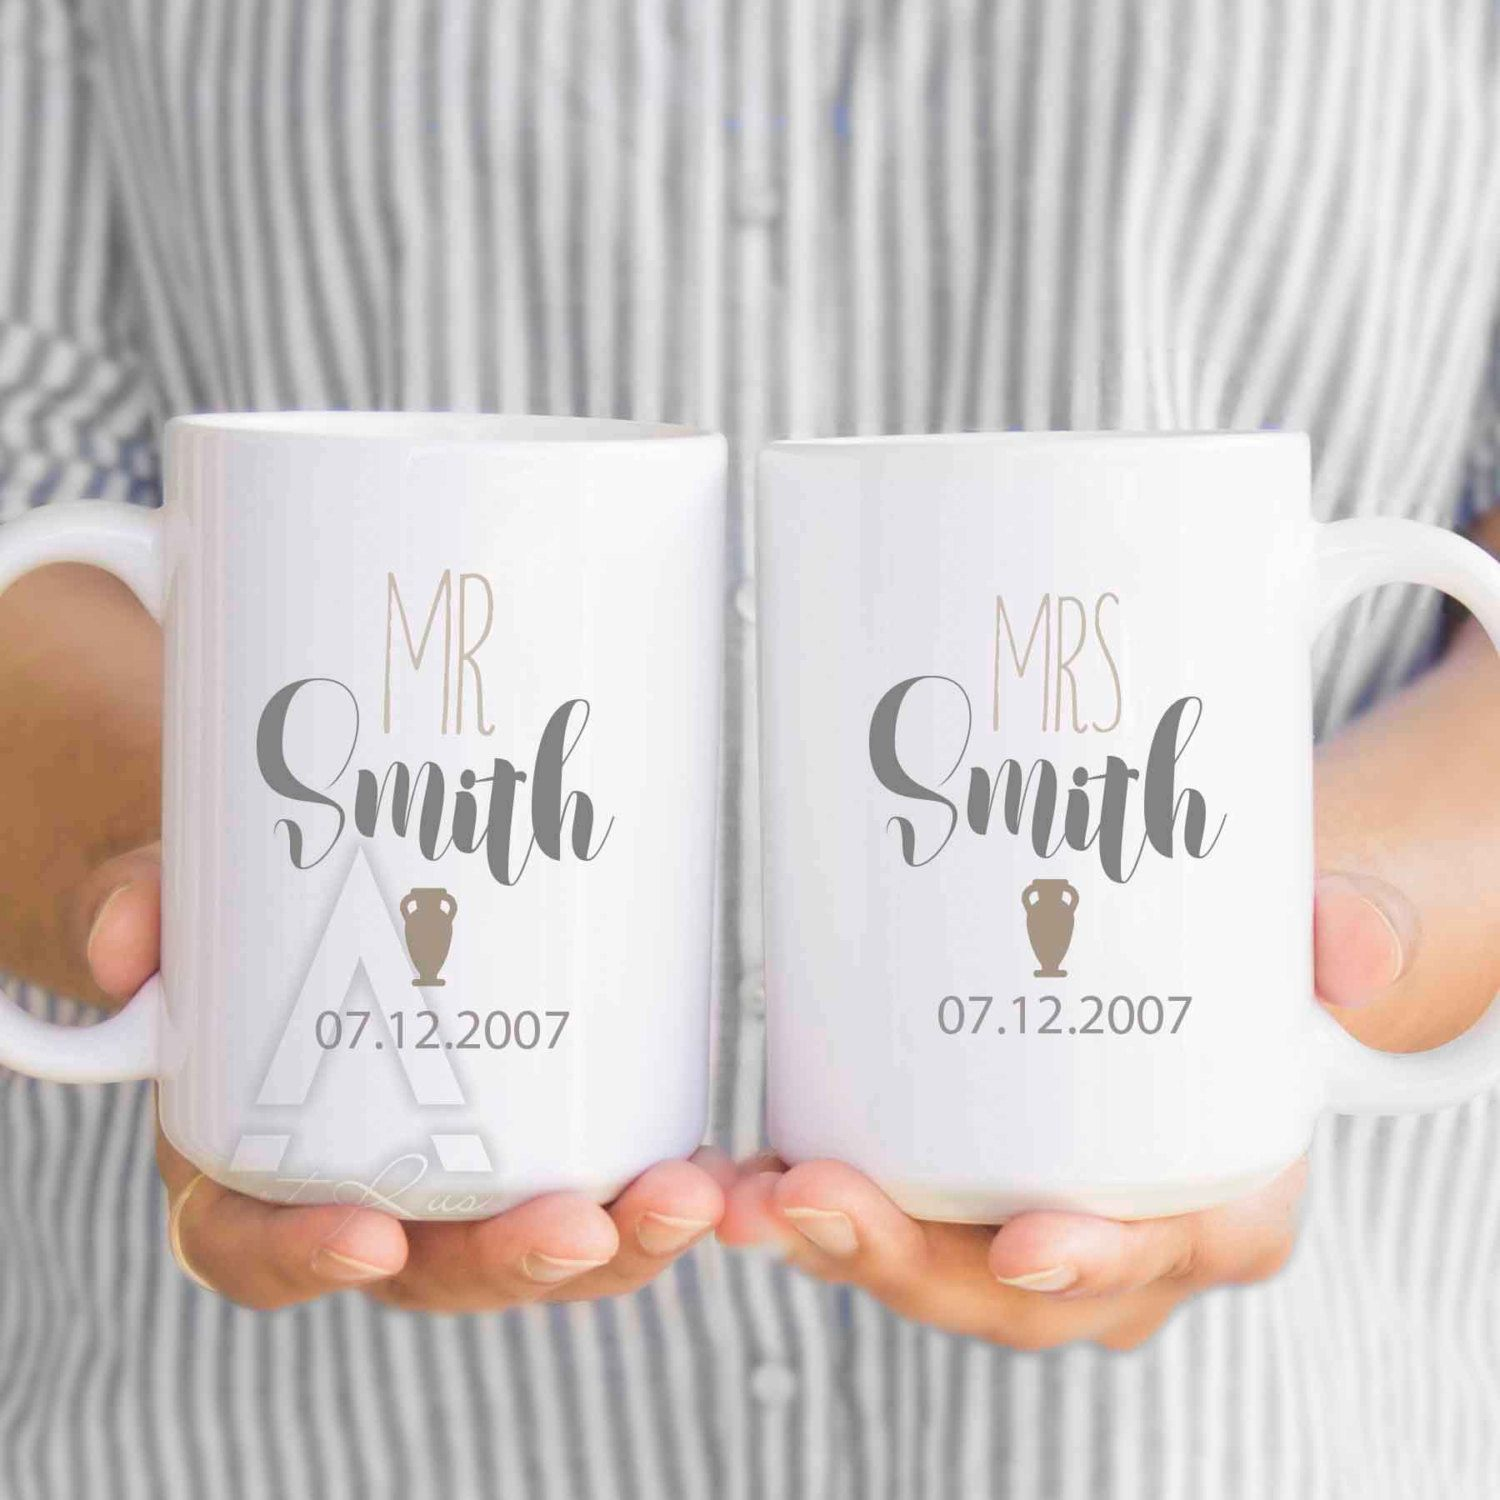 9th anniversary gift 9th anniversary gifts for men 9th anniversary 9th anniversary gift 9th anniversary gifts for men 9th anniversary gift pottery gift for him gift for her coffee mugs gift idea mu391 anniversary negle Choice Image